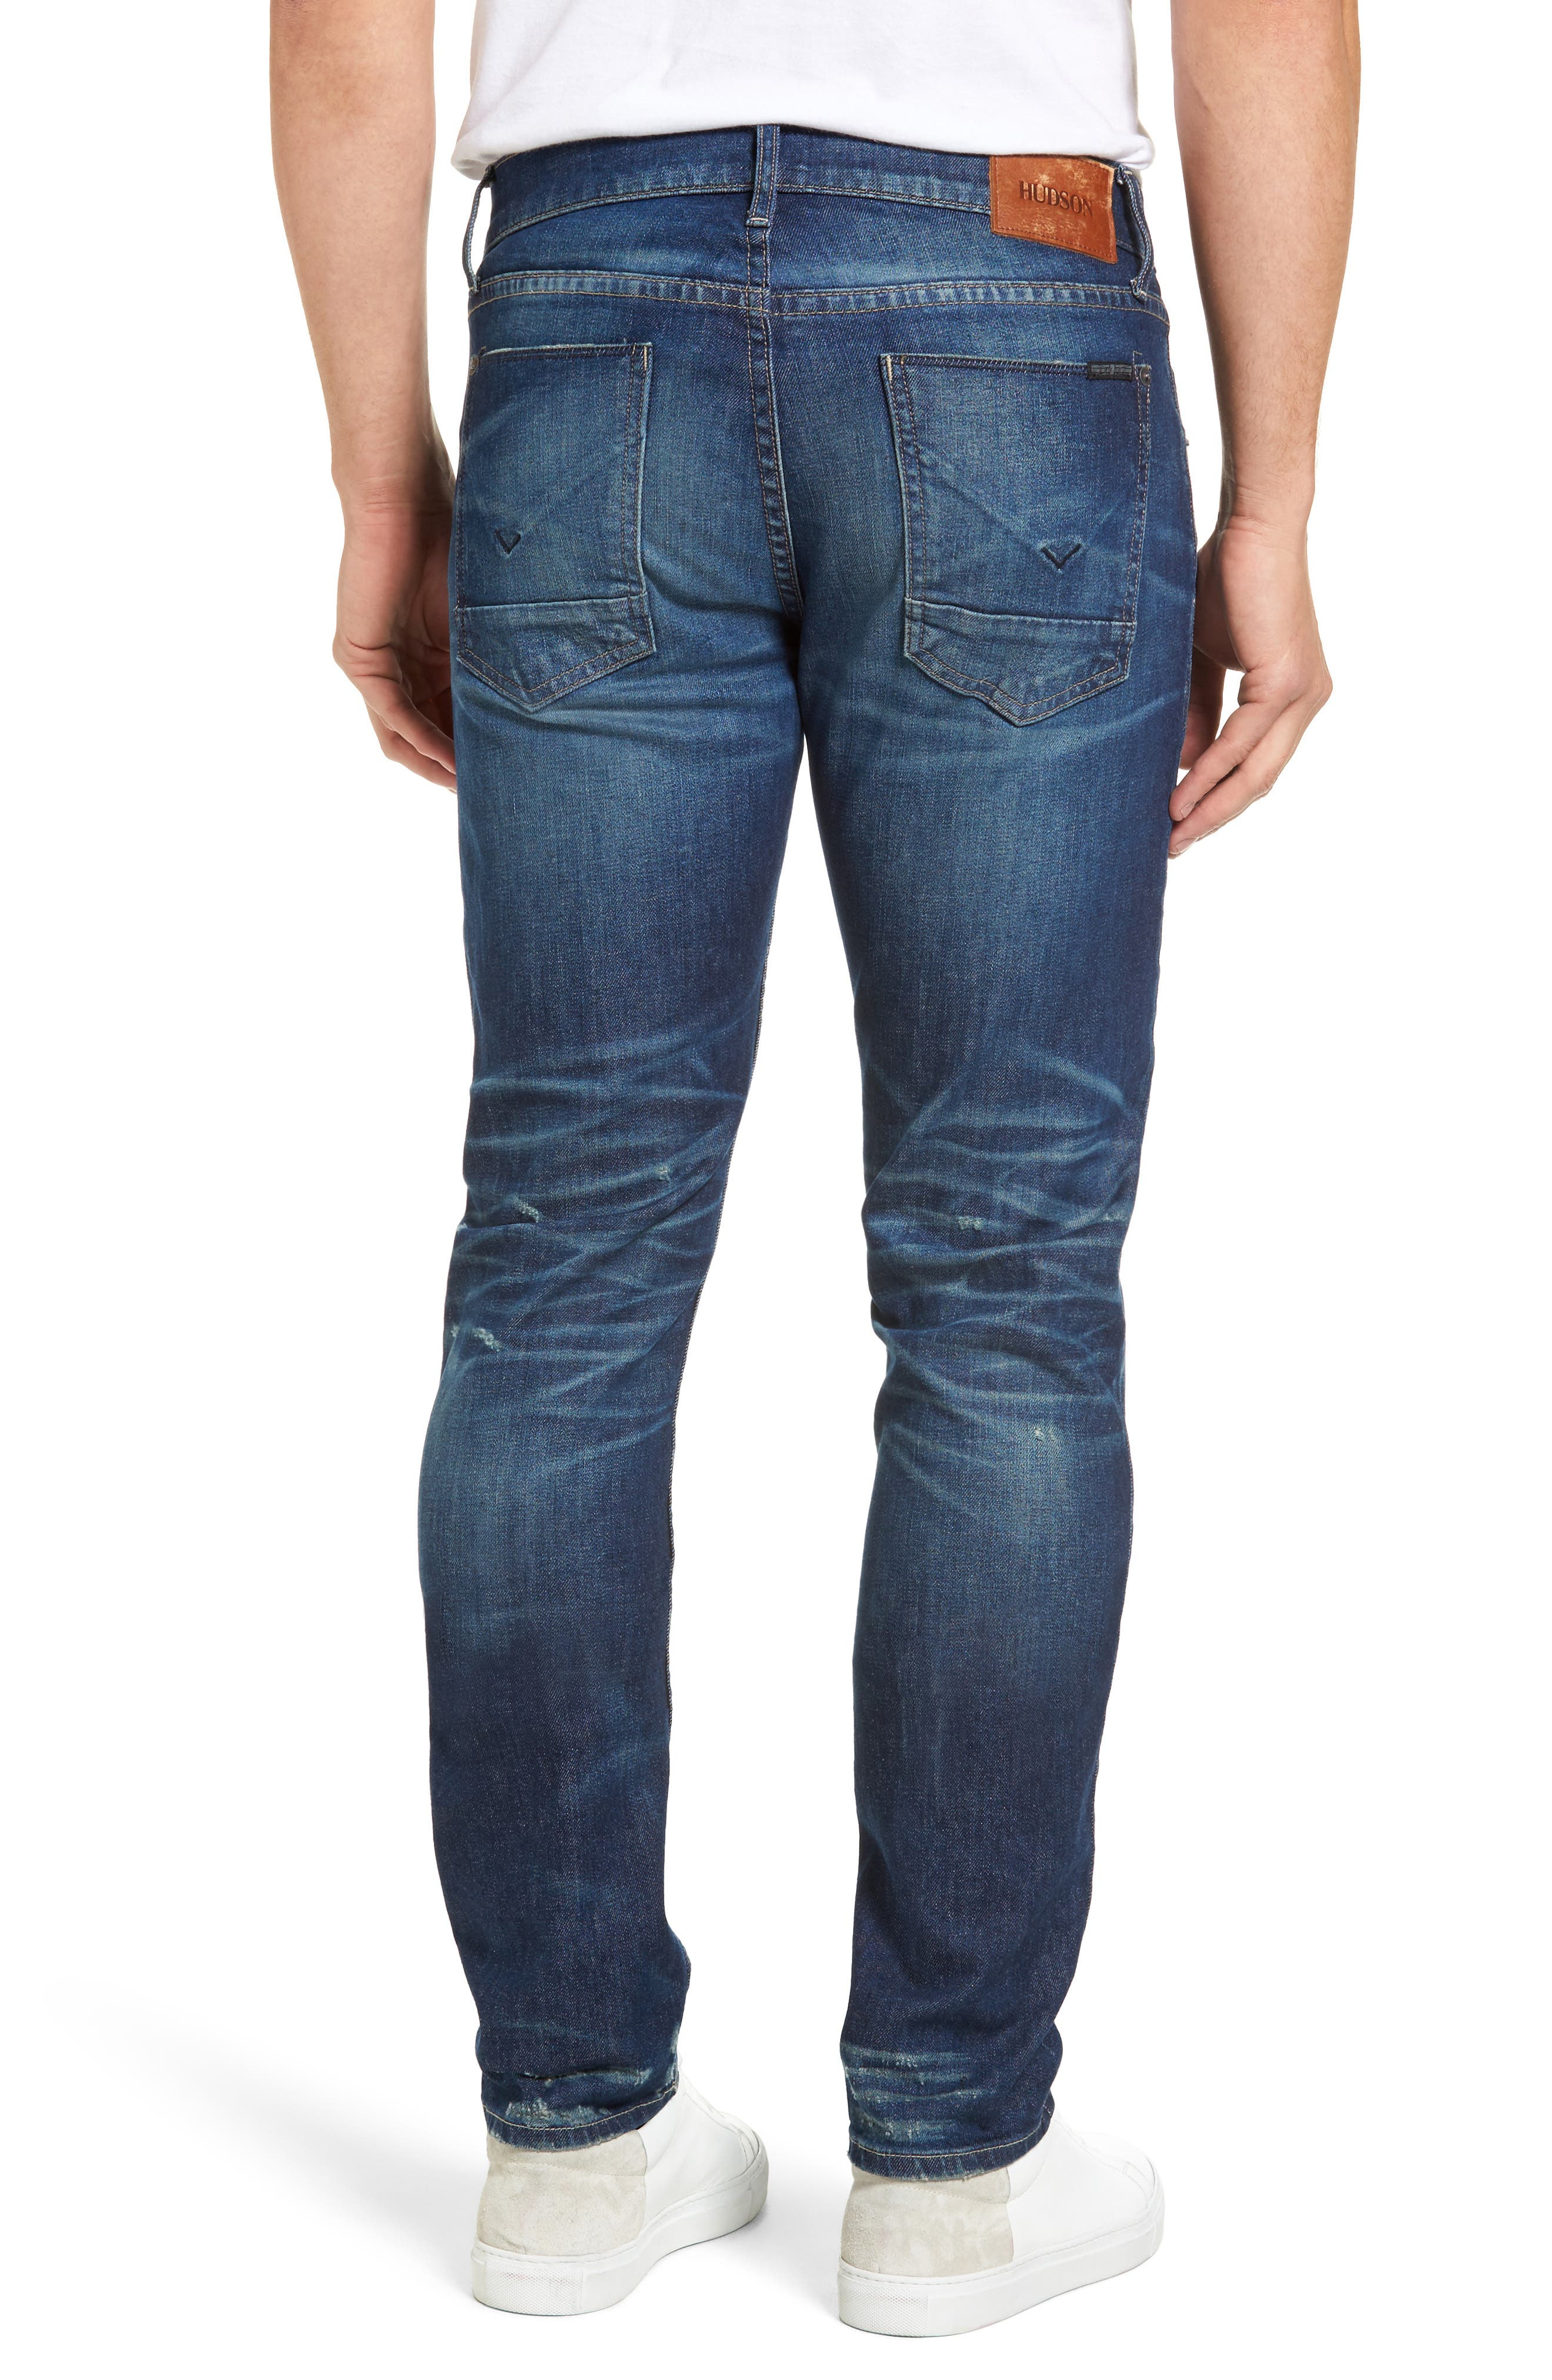 Blake Slim Fit Jeans,                             Alternate thumbnail 2, color,                             Operation